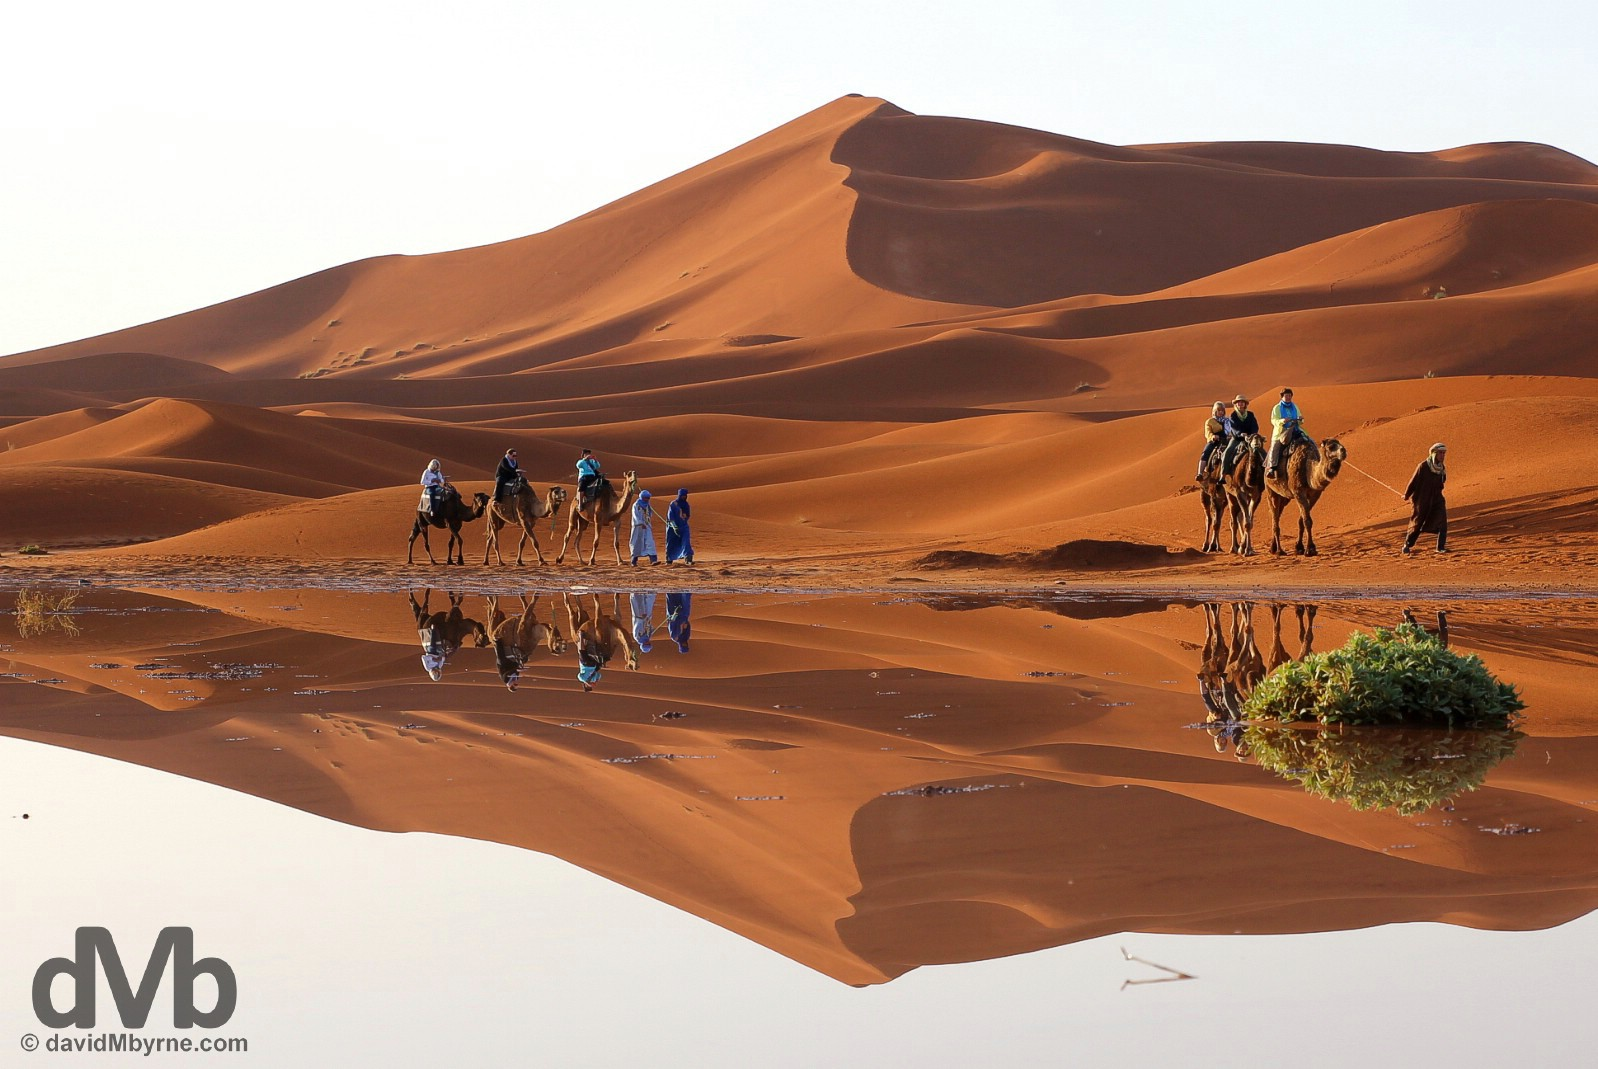 A sunrise camel train reflection among the dunes of Erg Chebbi, southeastern Morocco. May 19, 2014.